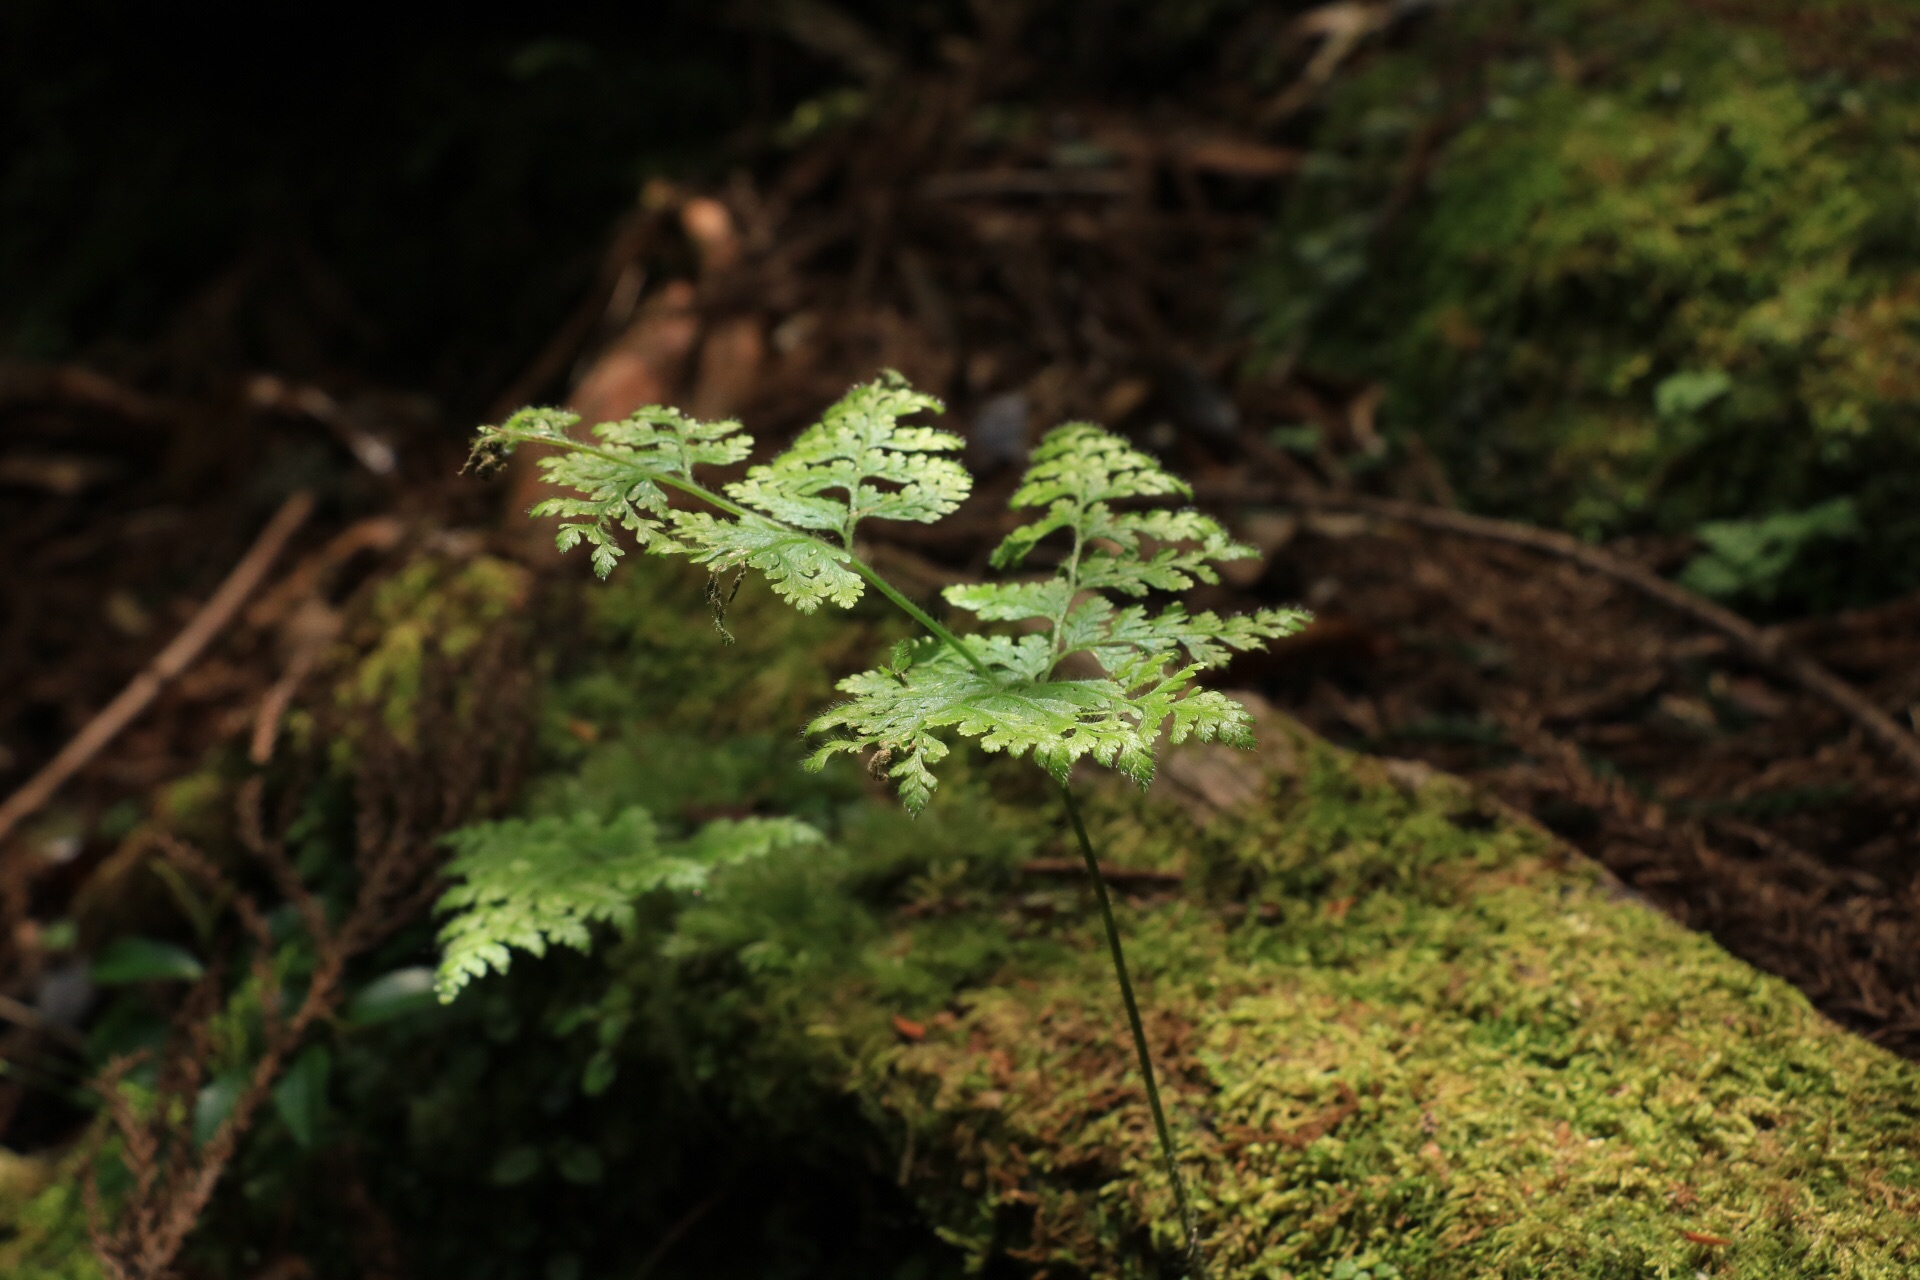 fern friends -- some of the first inhabitants.